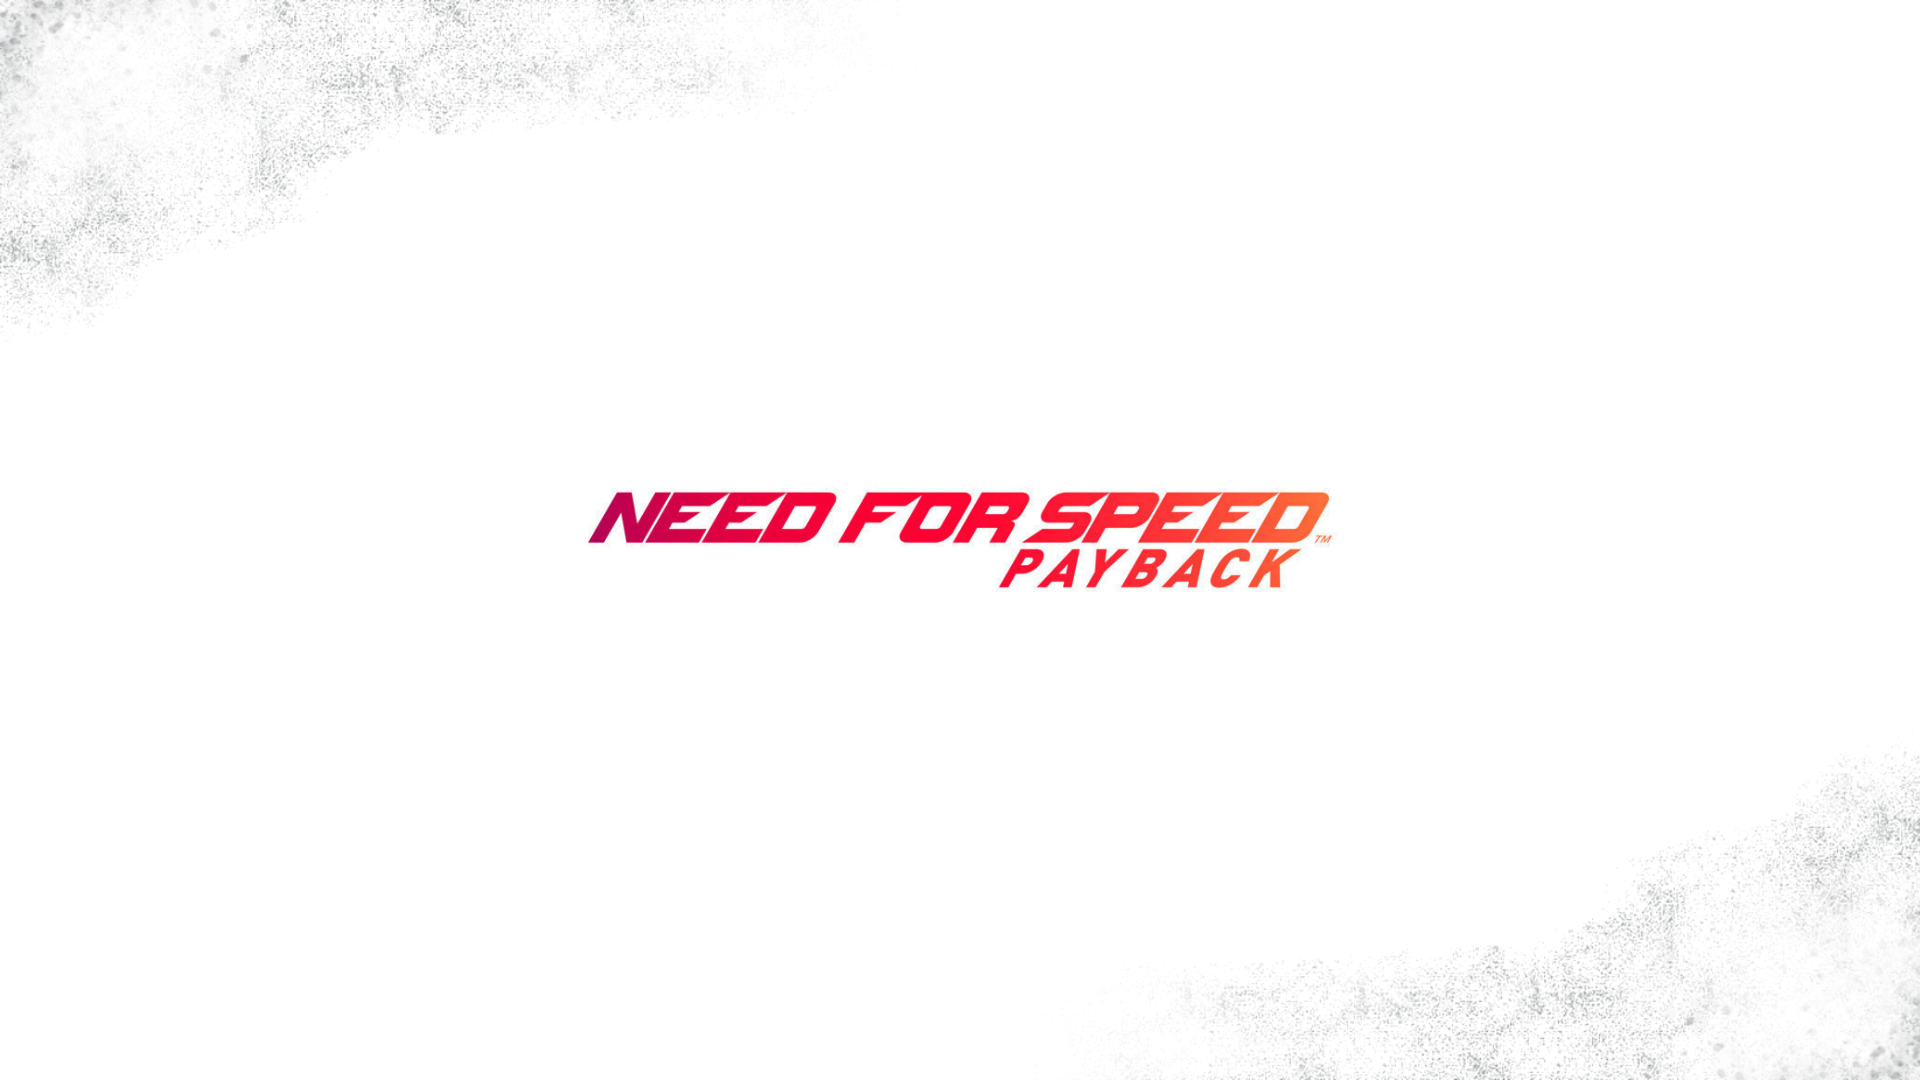 Need For Speed Payback Widescreen